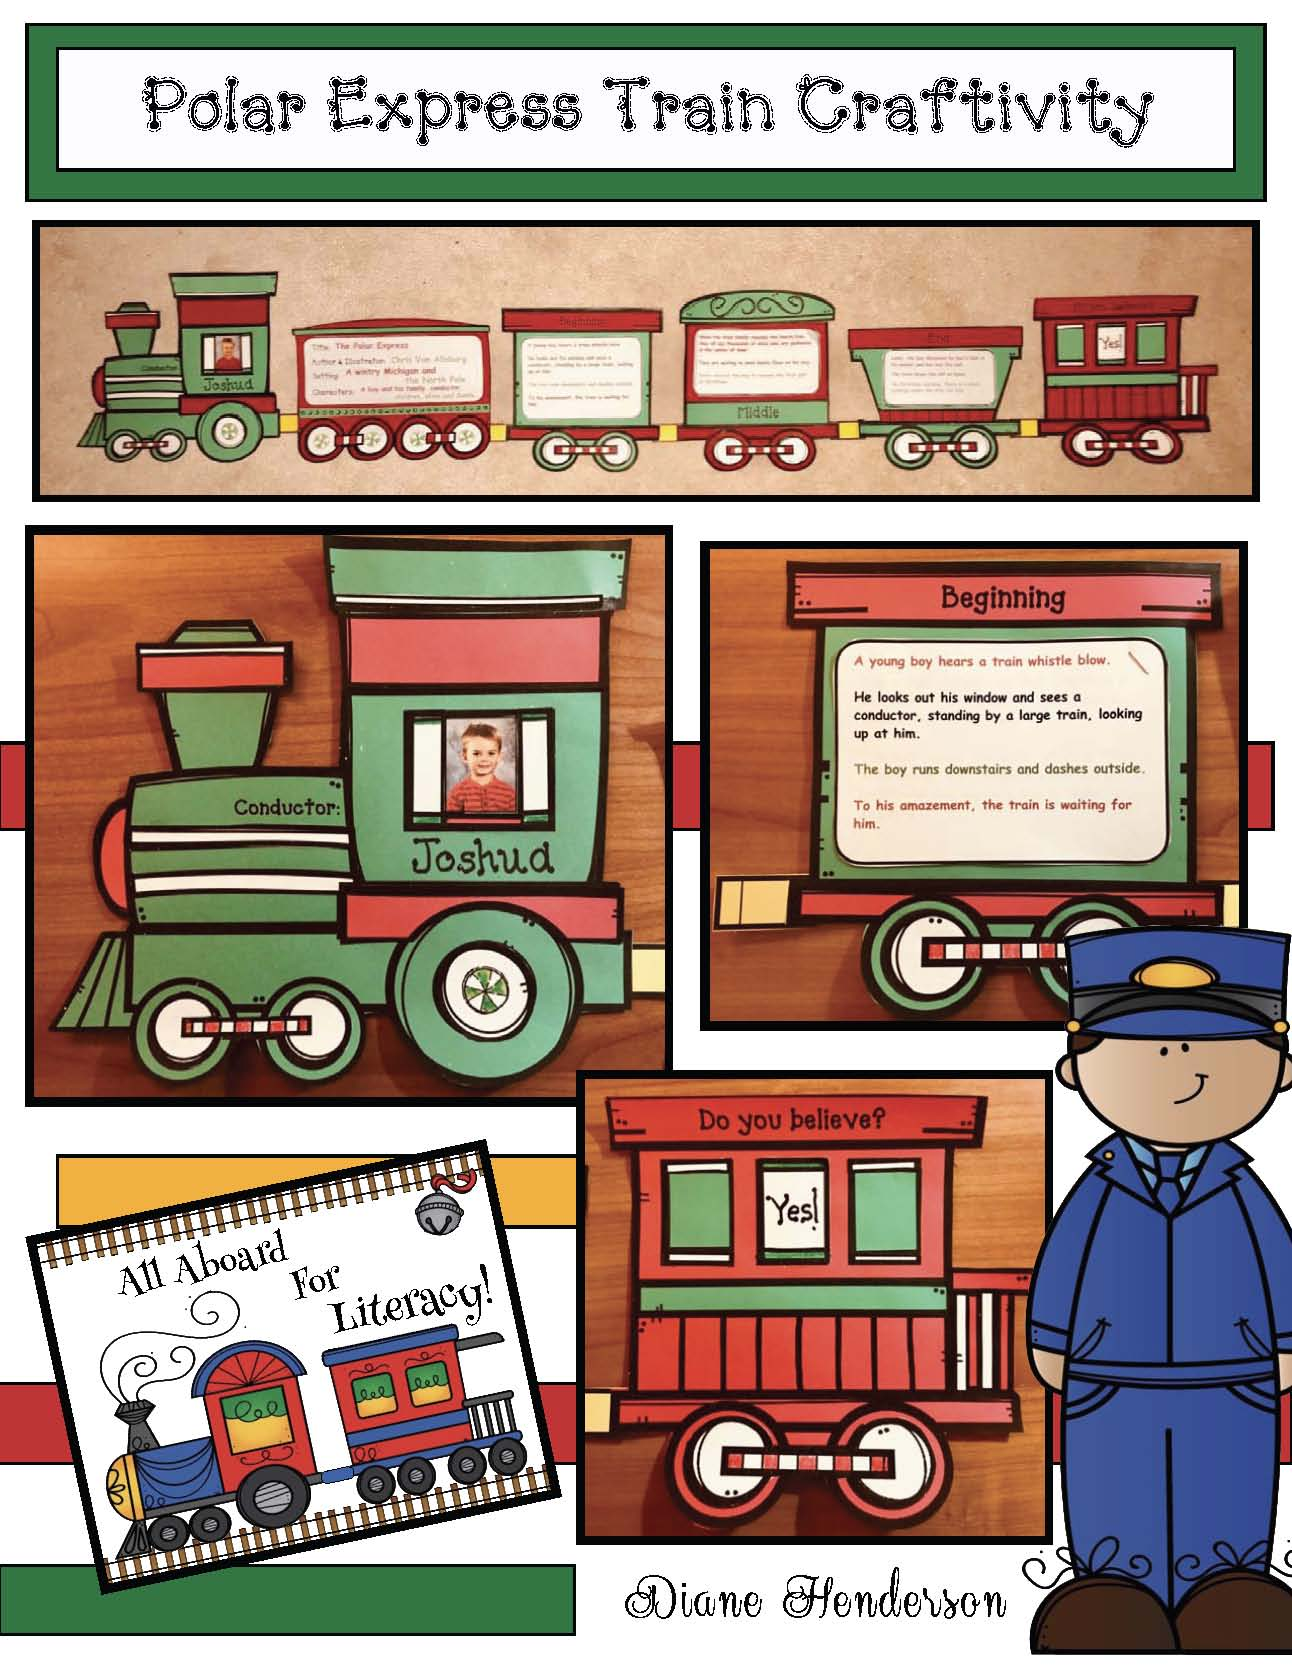 polar express crafts, polar express activities, literacy centers for the polar express, train crafts, retelling a story activities, sequencing a story activities, winter bulletin boards, Christmas bulletin boards,